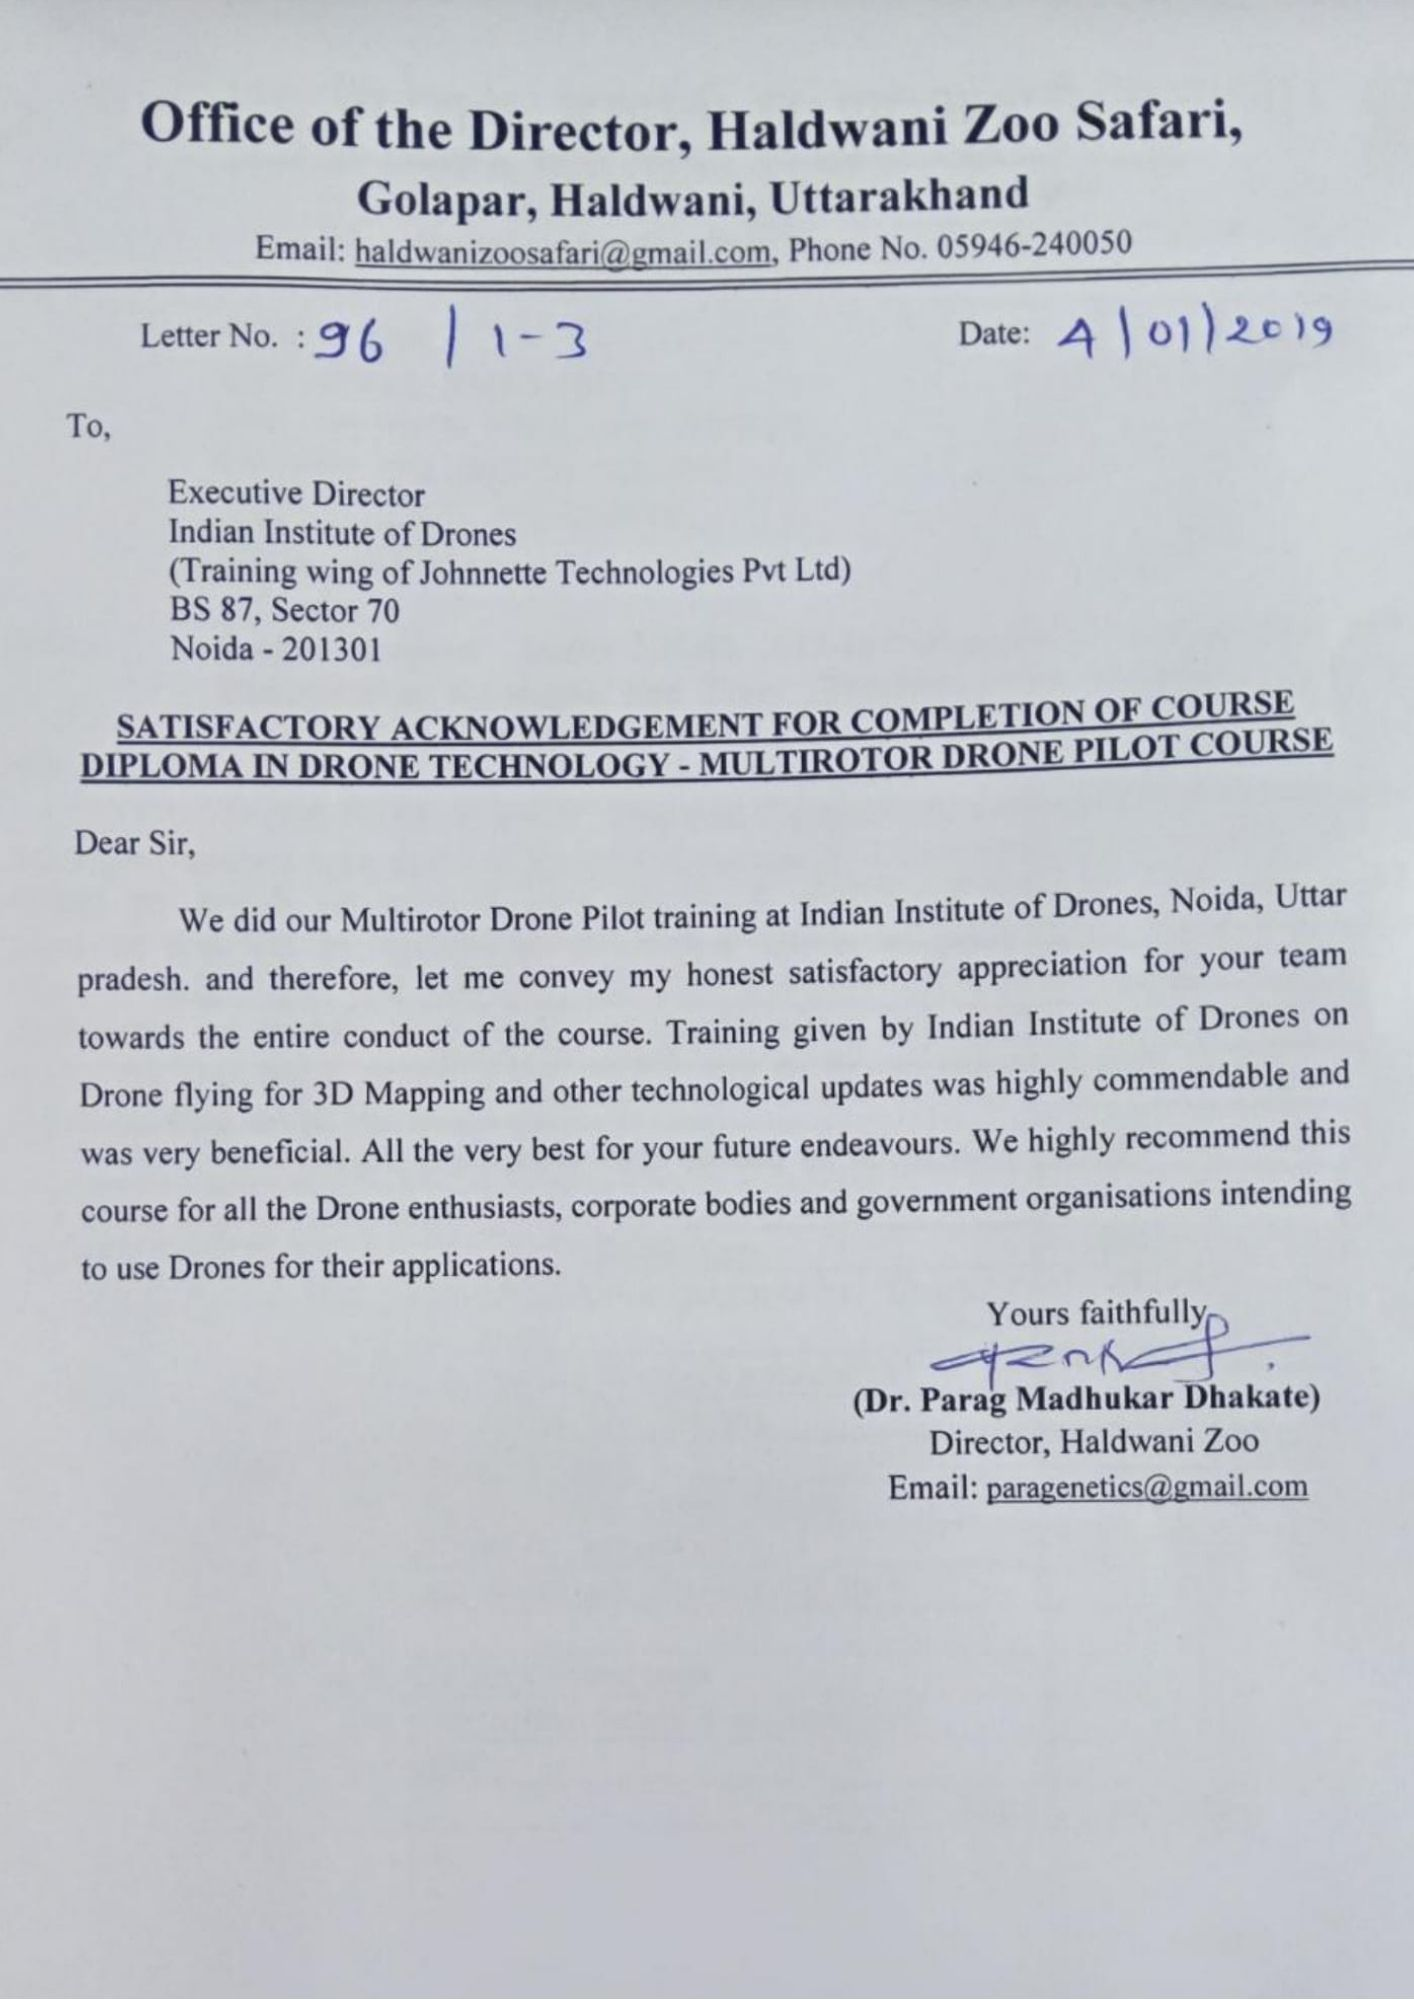 Satisfactory Letter for Drone Training Received from Haldwani Zoo Safari